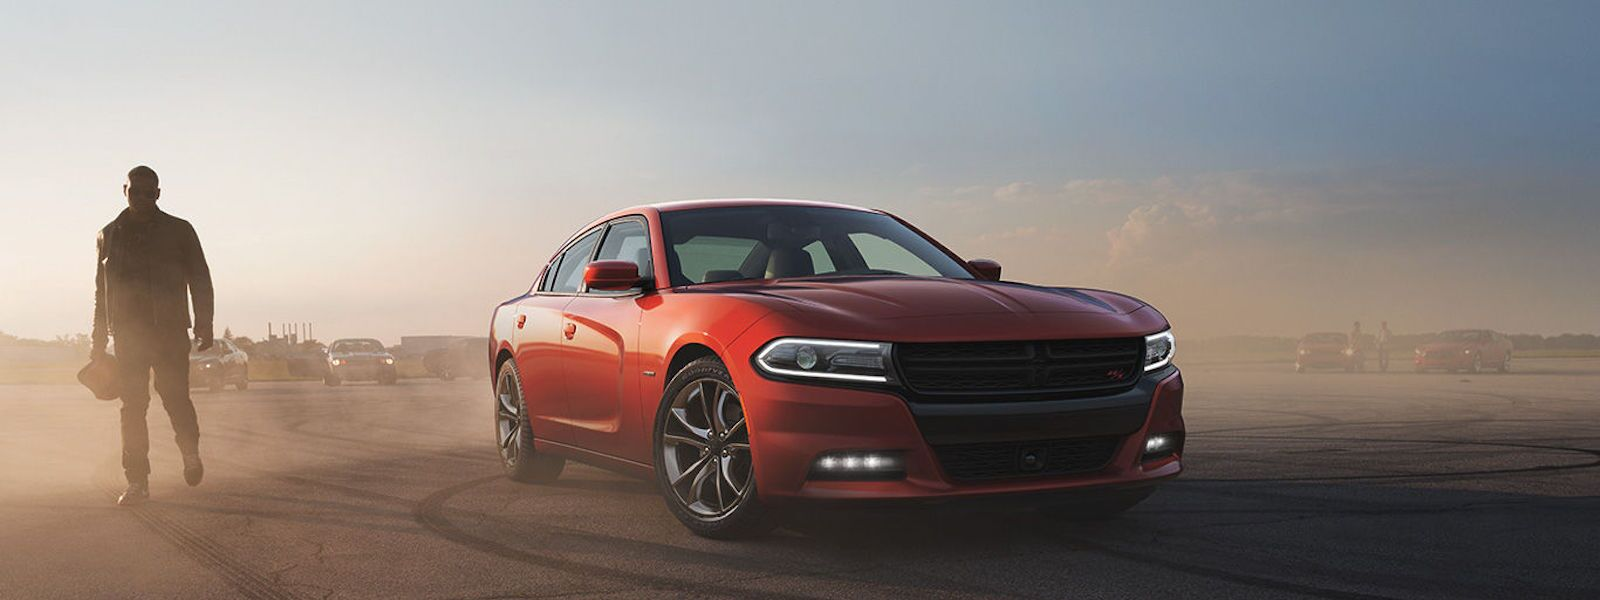 2016 Dodge Charger Style